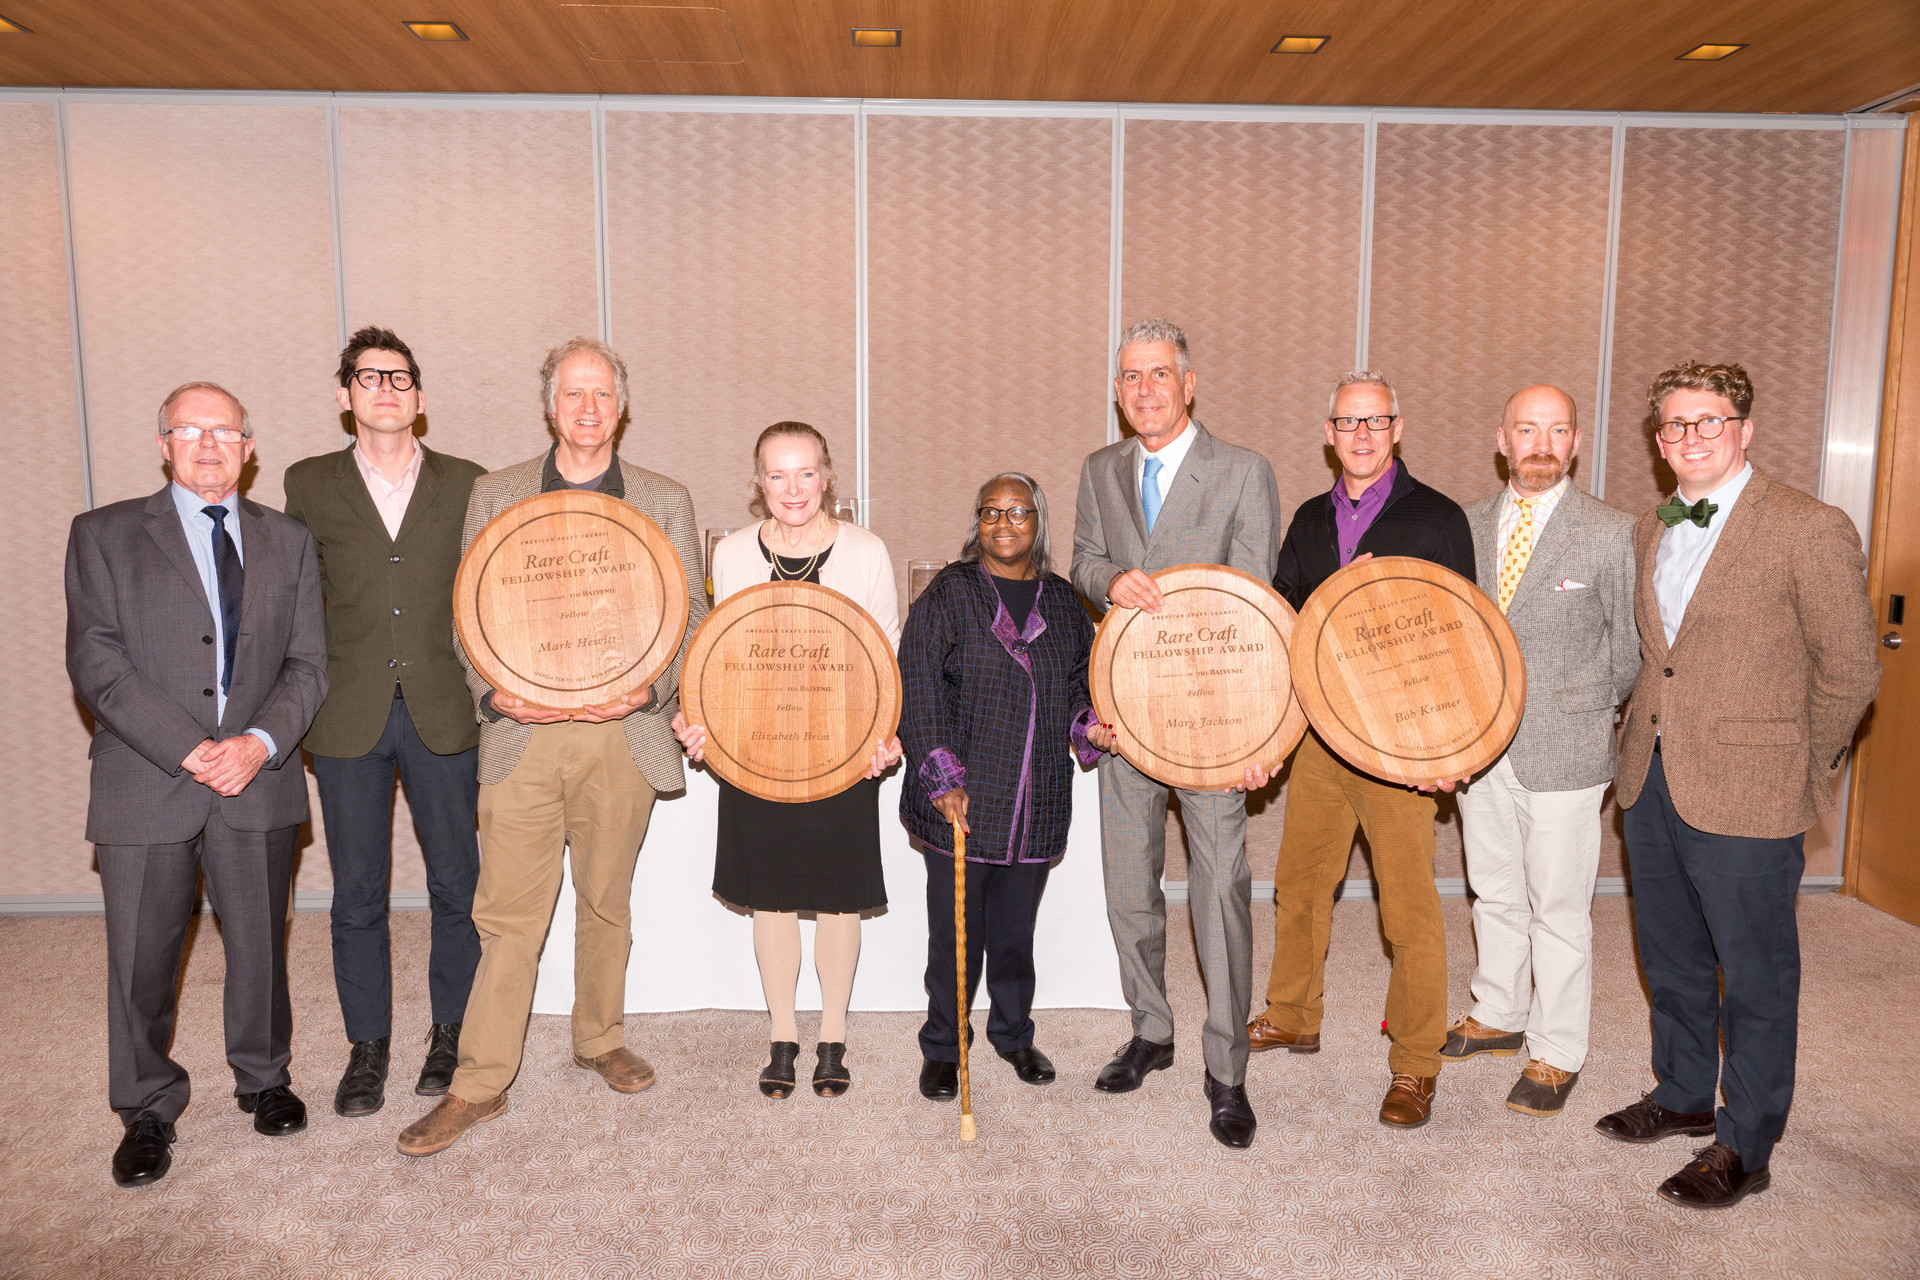 2015 Rare Craft Fellowship Award